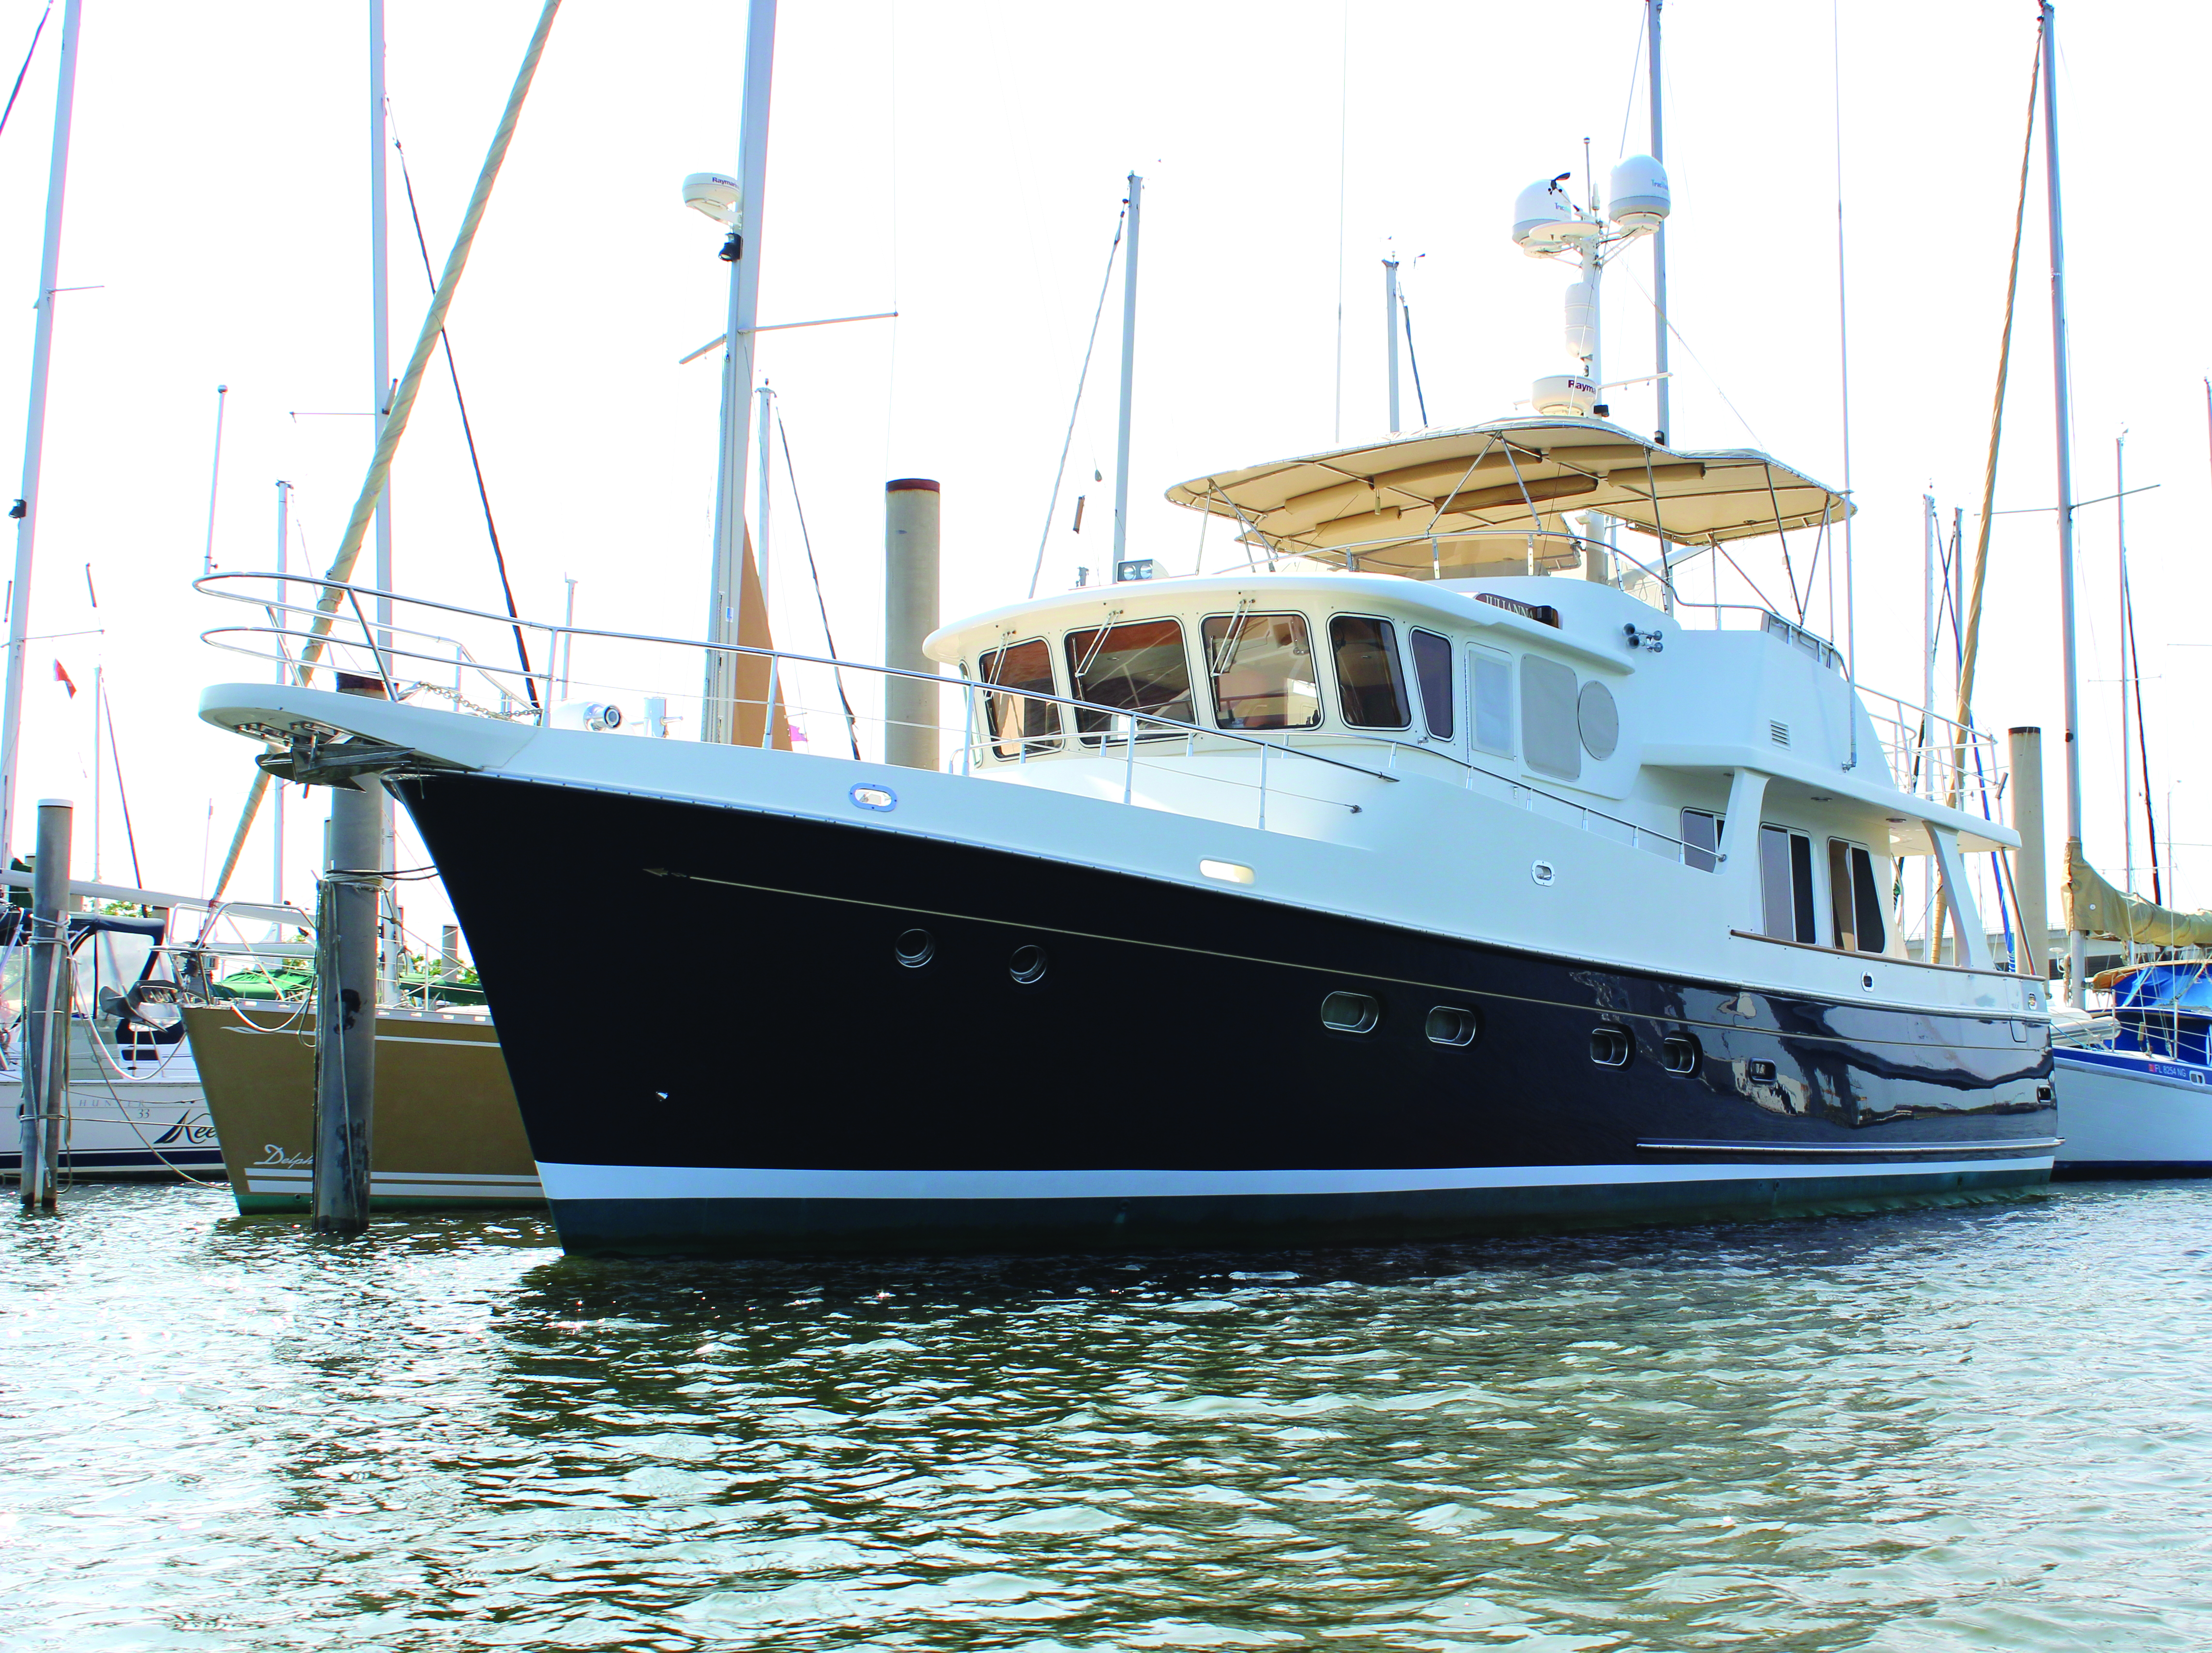 Ride in style with this renovated Pensacola Selene 50 Ocean Trawler; Photography by Picasa